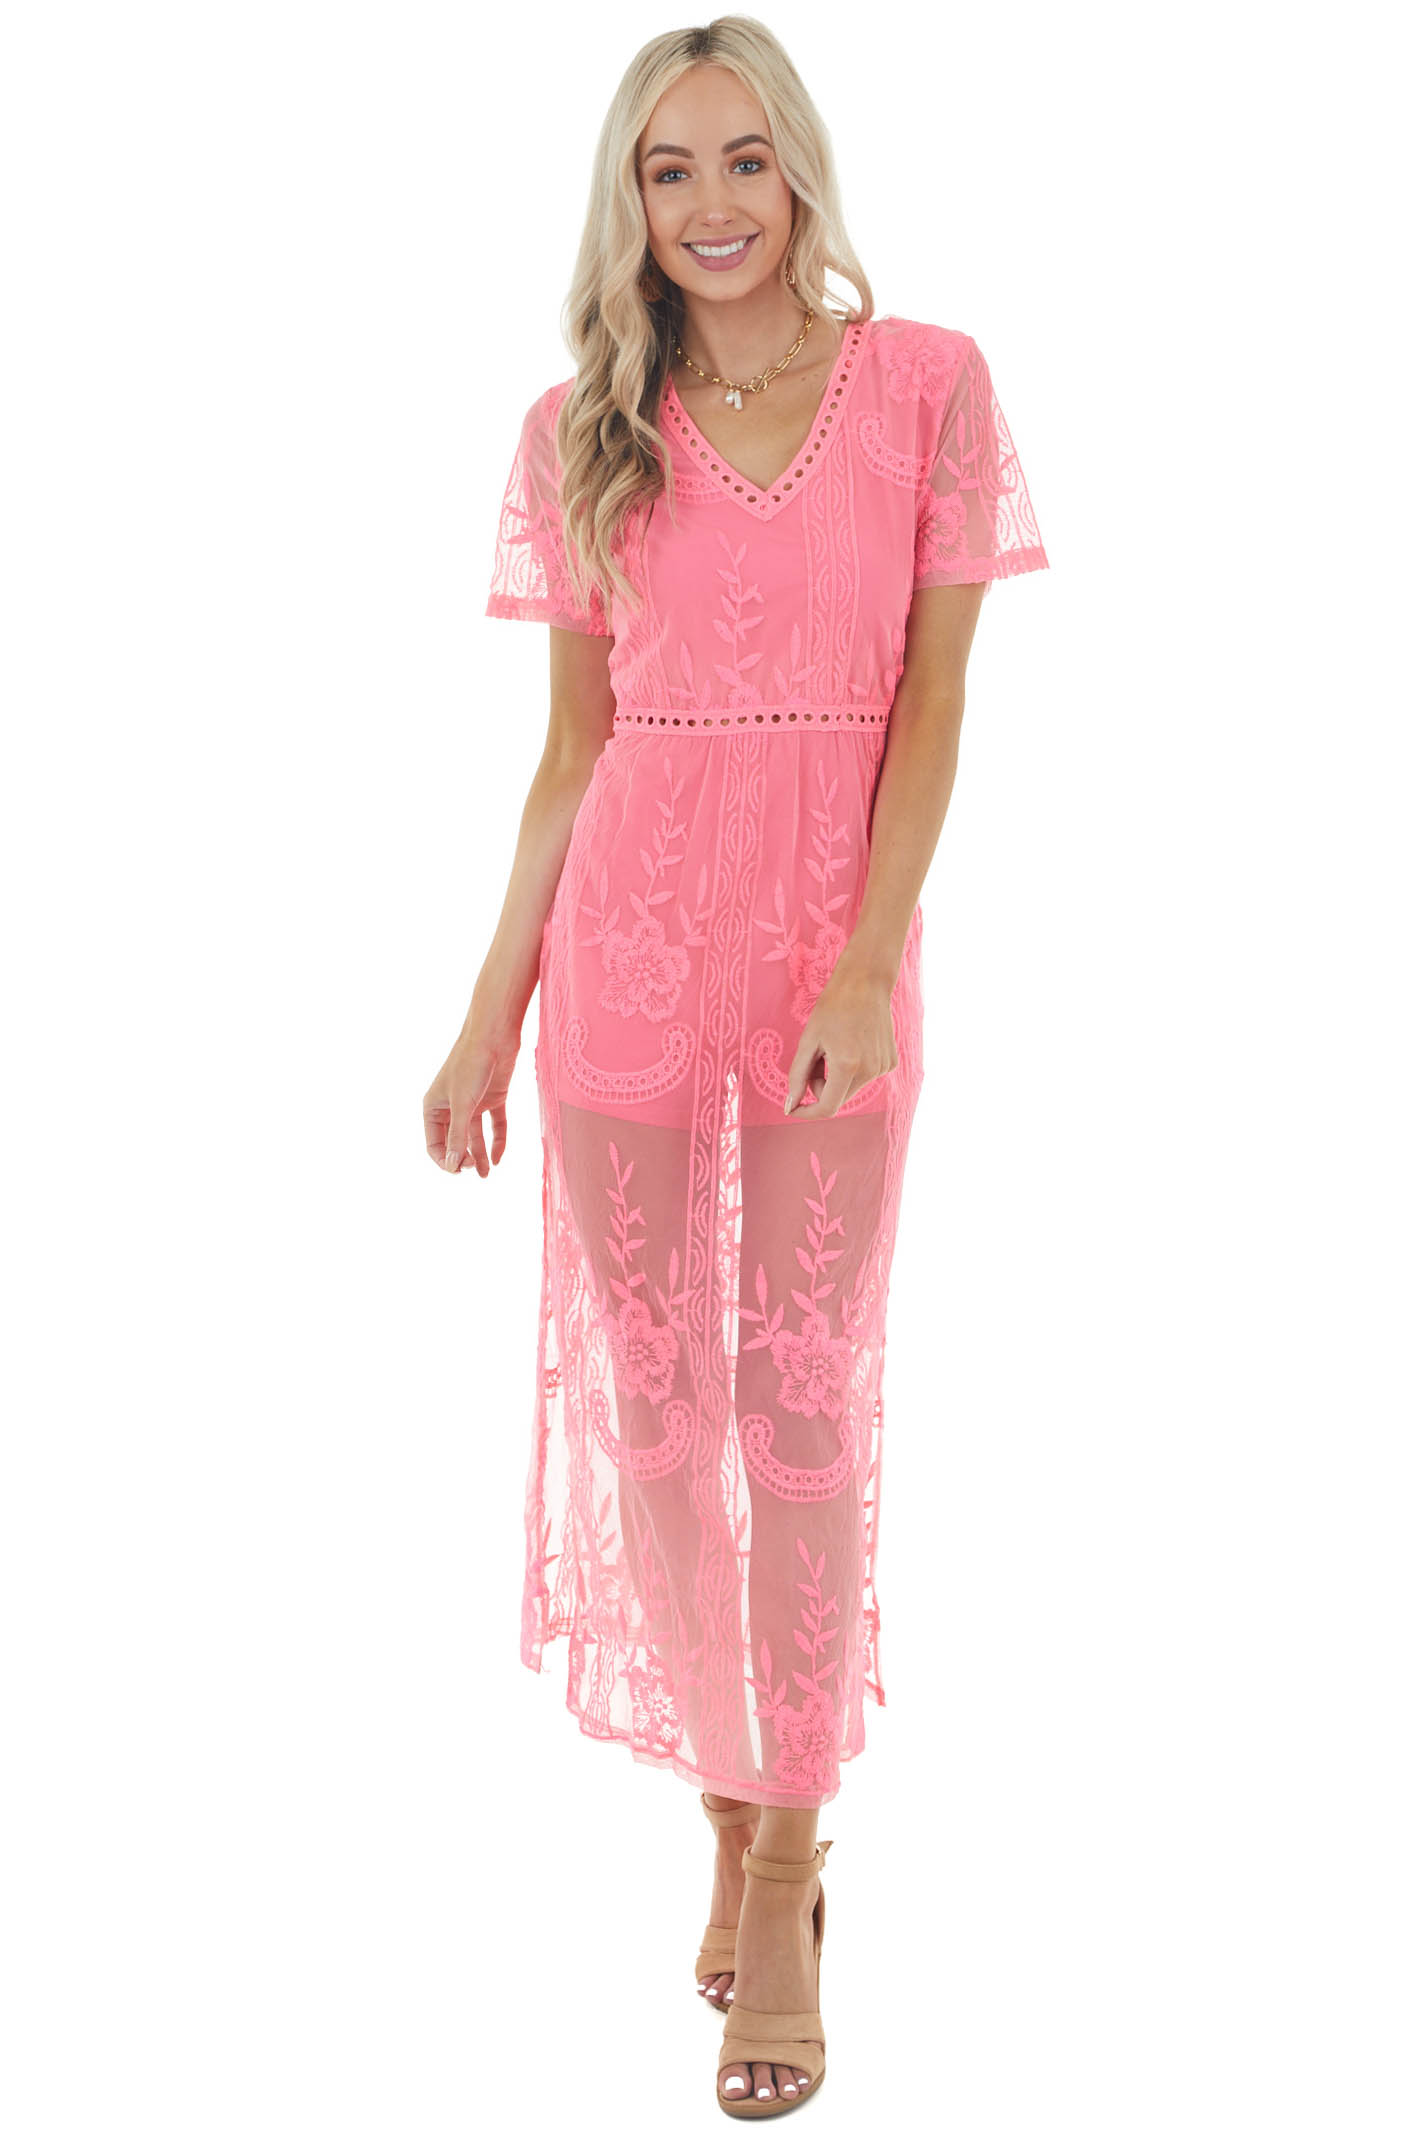 Neon Pink Short Sleeve Romper with Floral Lace Maxi Overlay